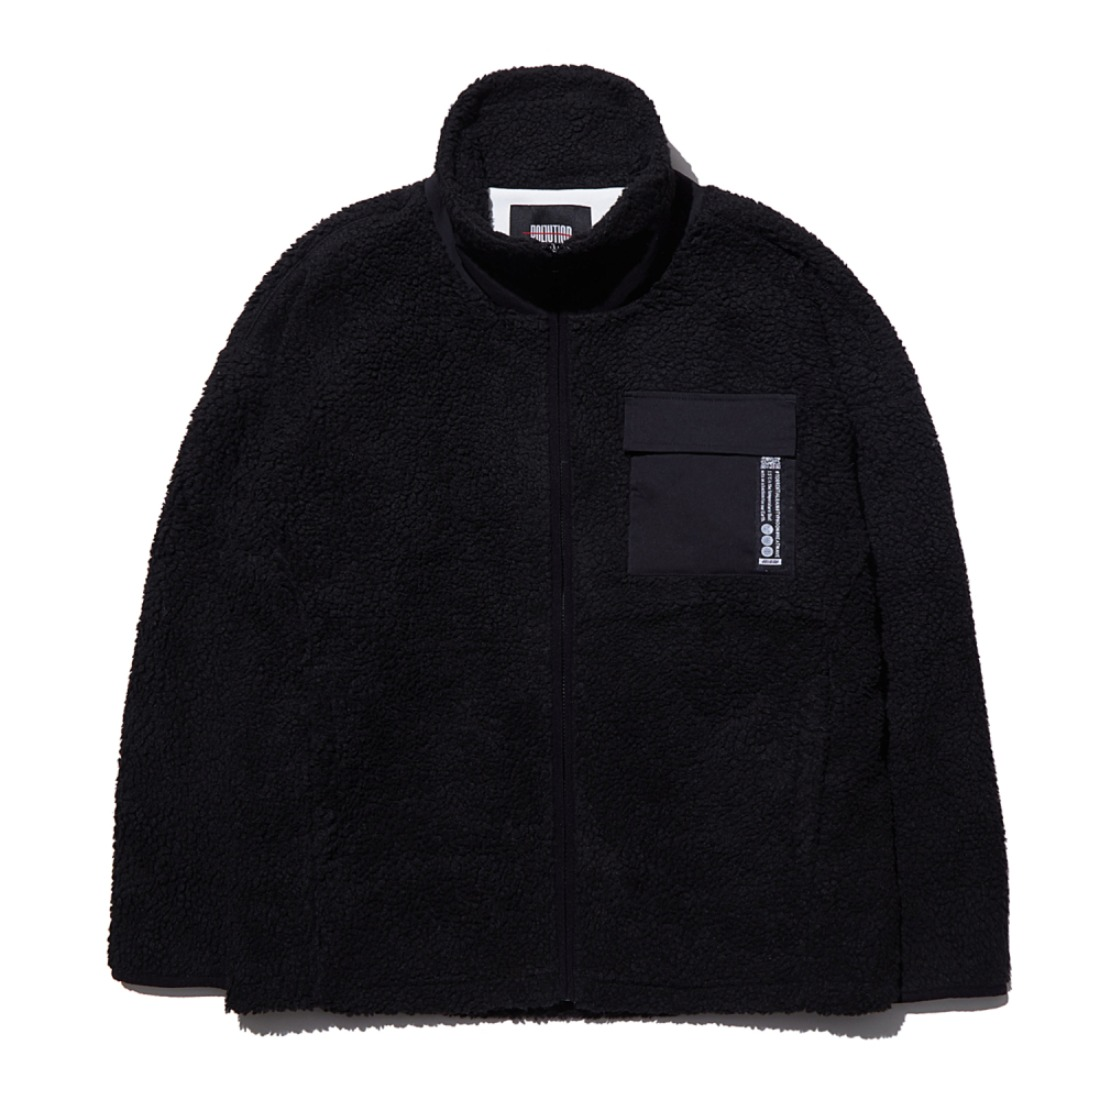 MIXED FLEECE ZIP-UP JACKET BLACK